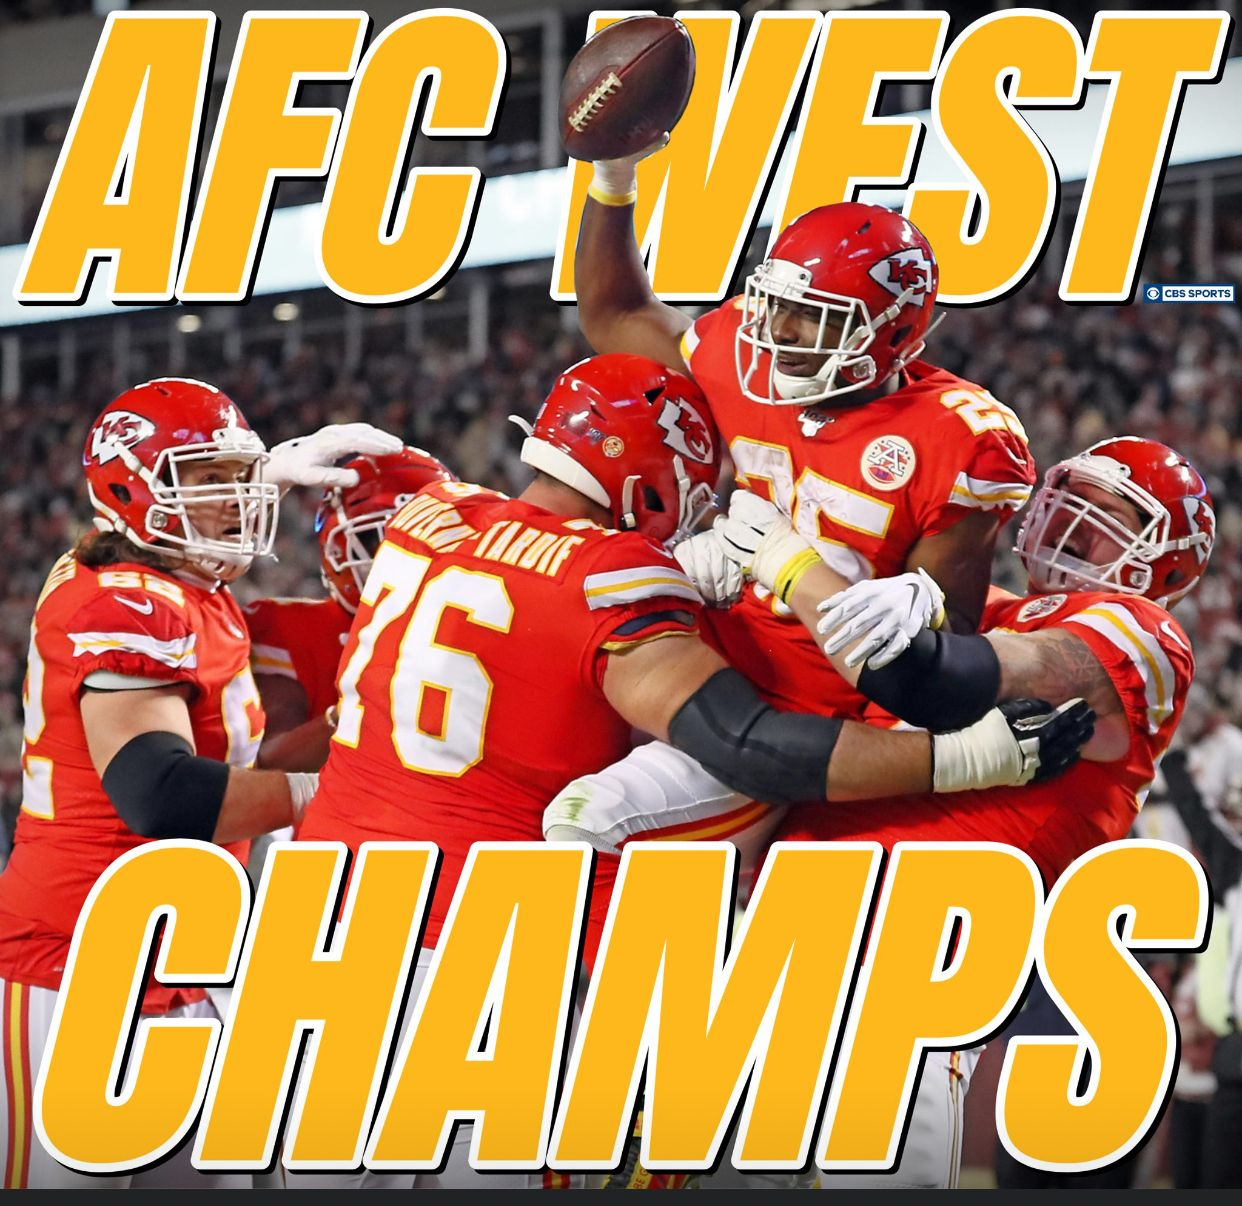 Pin By Kimberly Smith On Kansas Chiefs In 2020 Kansas City Chiefs Kansas City Chiefs Football Kansas Chiefs